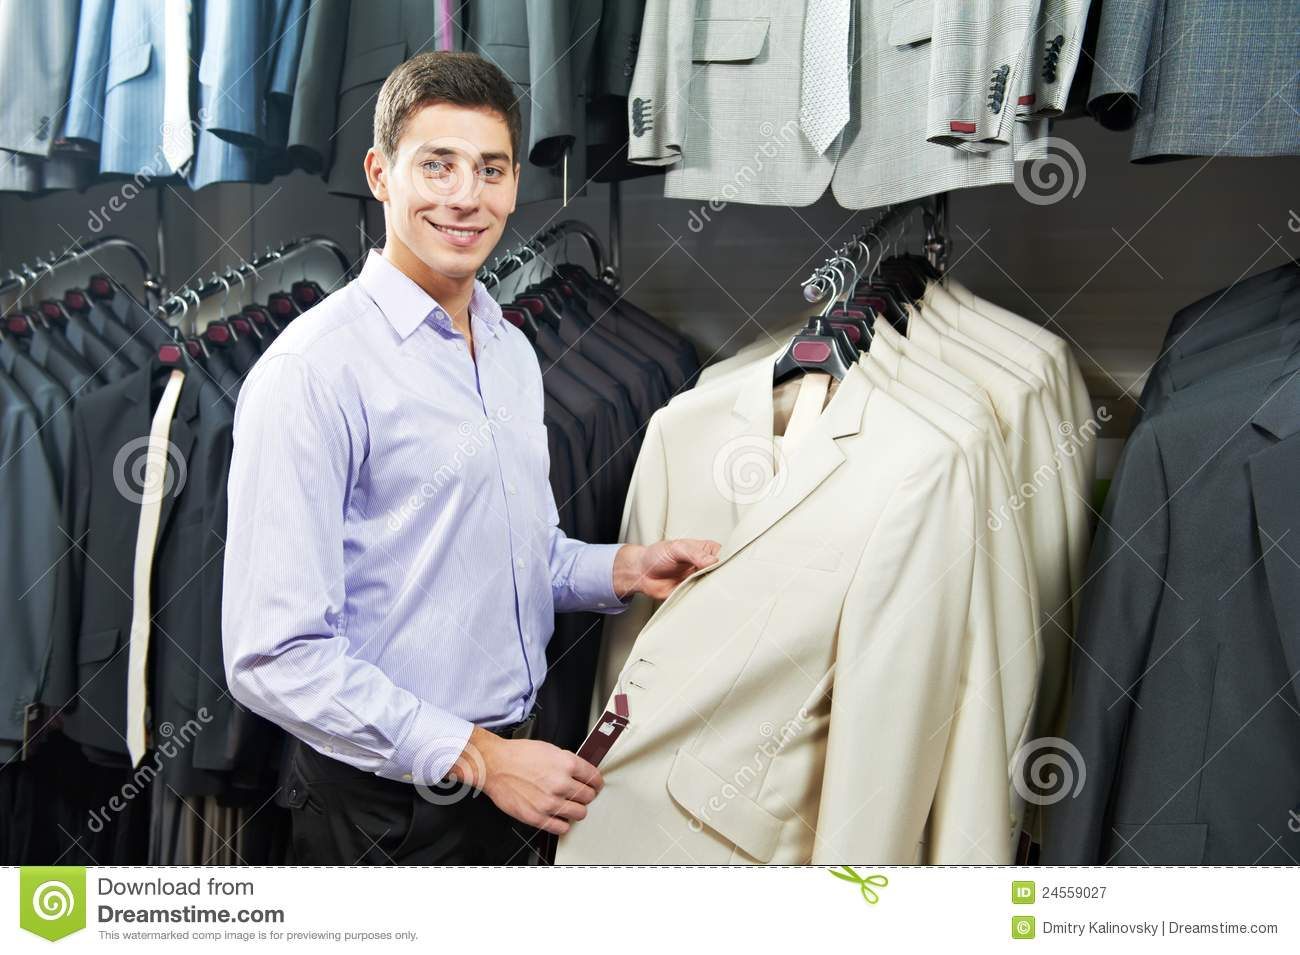 57022976 Young man choosing suit jacket during apparel shopping at clothing store